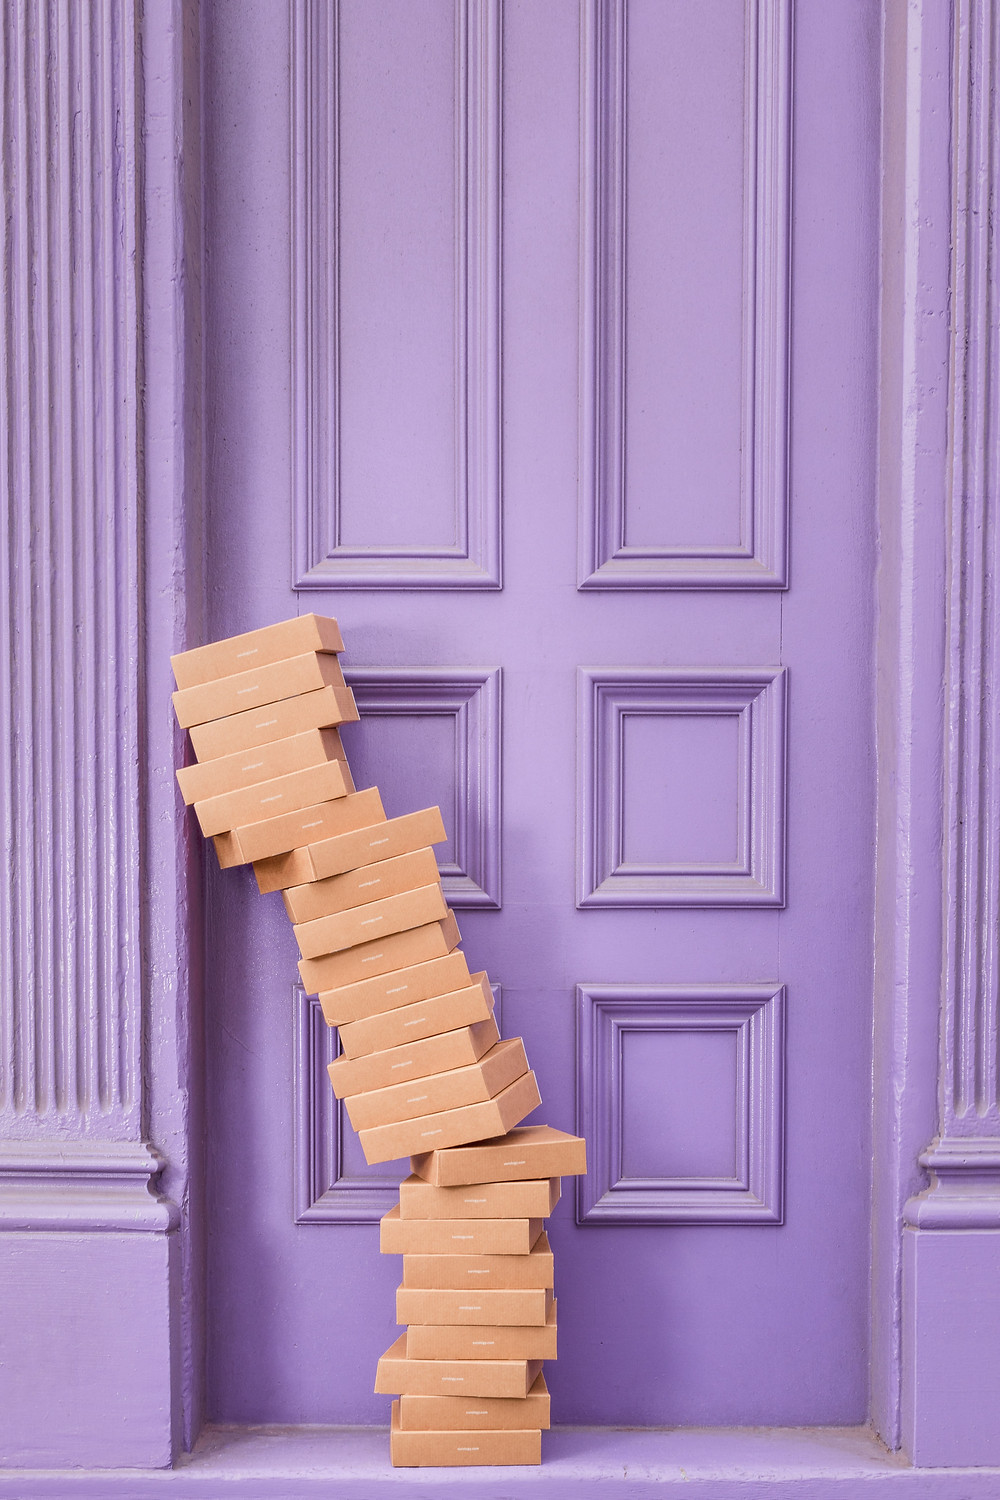 pile of boxes at a door stoop